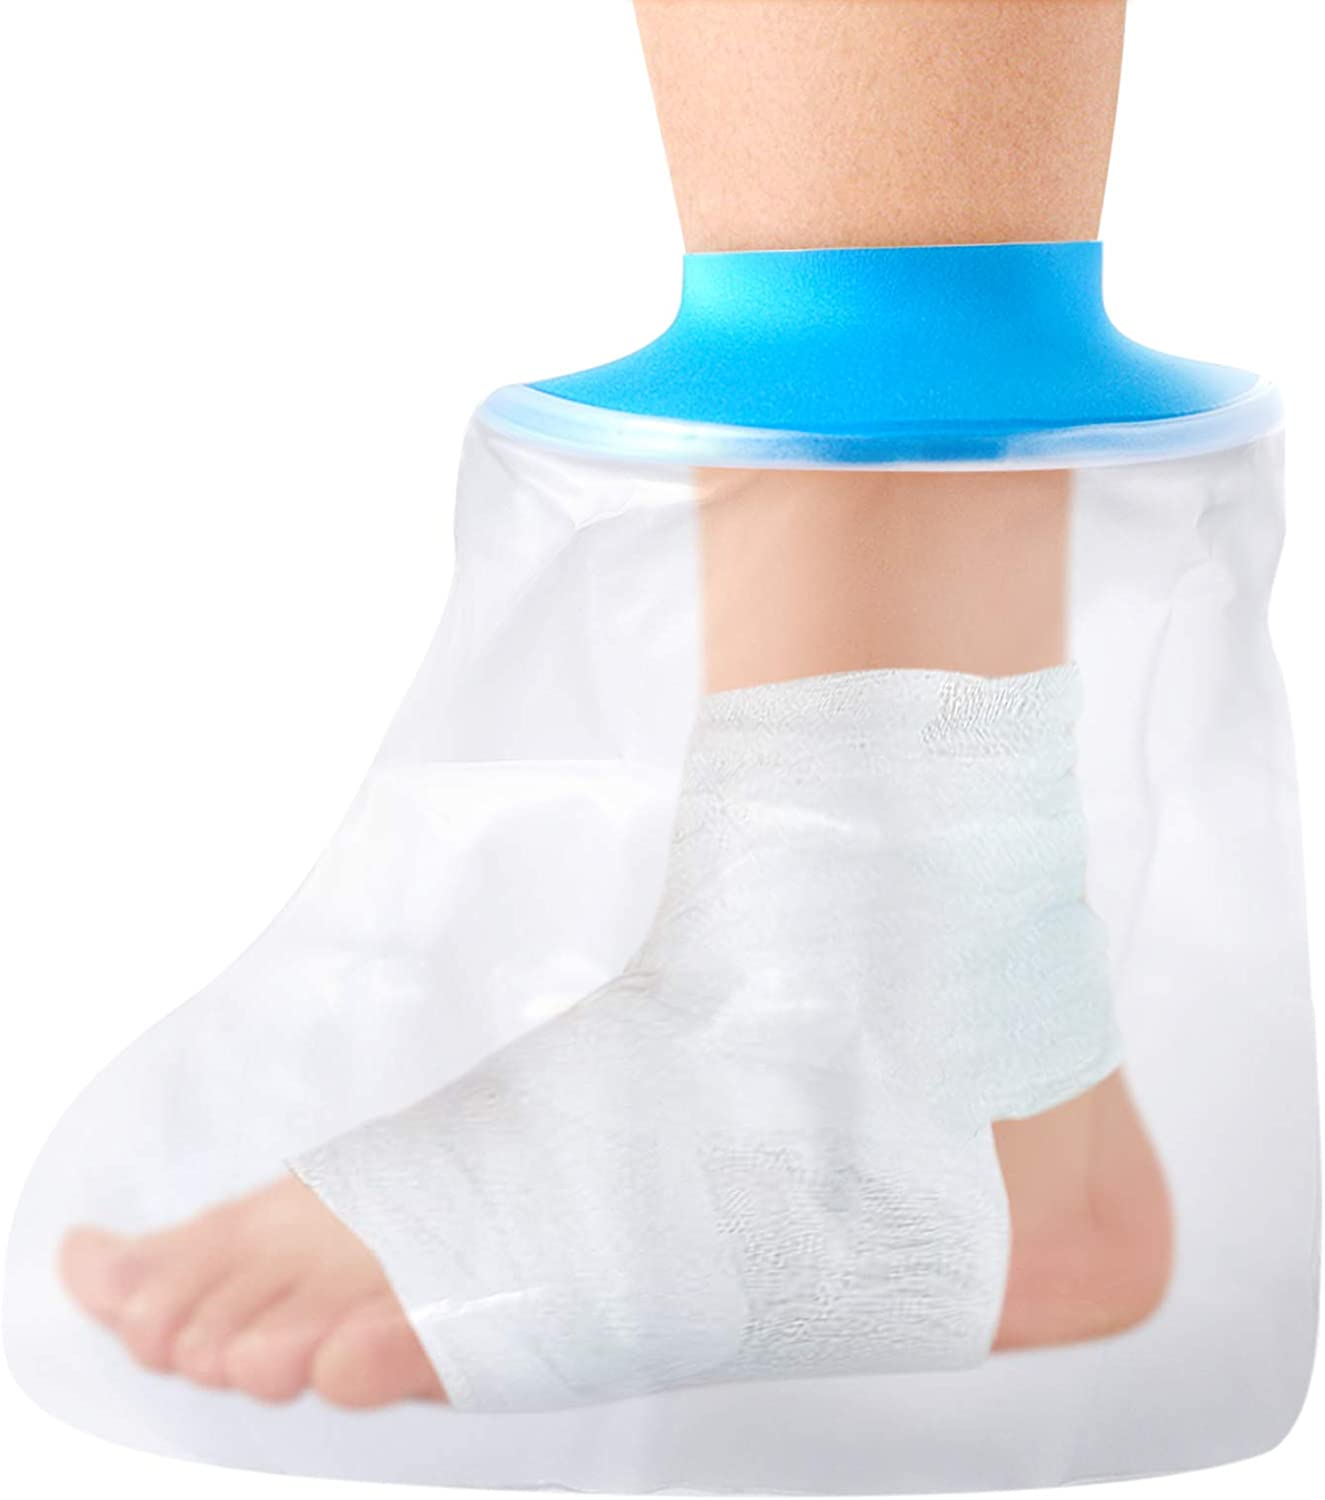 Waterproof Cast Cover Foot, Wound Cover Protector for Shower Bath, Soft Comfortable Watertight Seal to Keep Wounds Dry, Ankle Wound and Burns Adult Reusable(Foot)